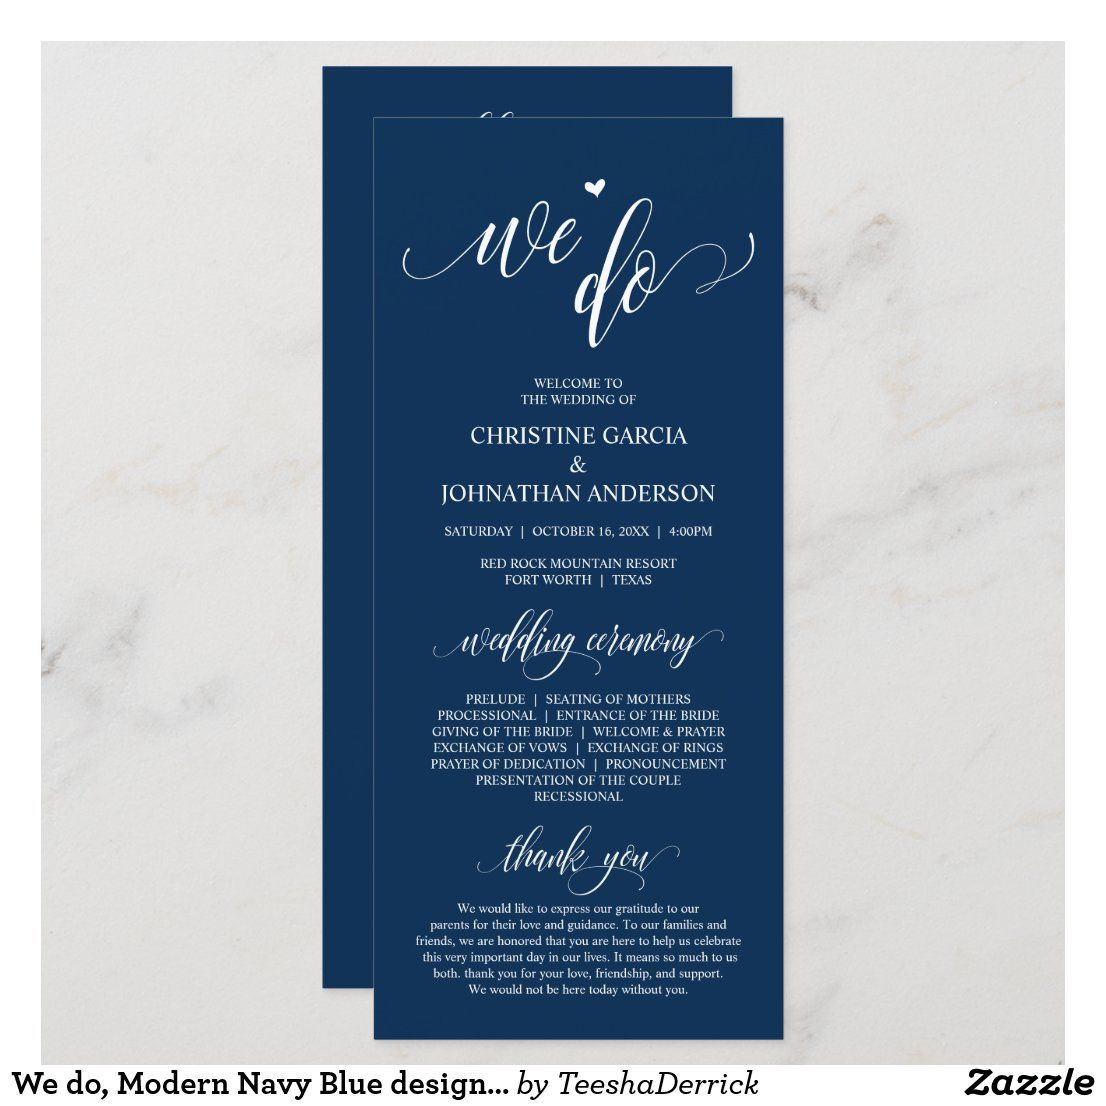 We Do Modern Navy Blue Design Wedding Ceremony Program Zazzle Com In 2020 Wedding Ceremony Programs Wedding Program Design Ceremony Programs